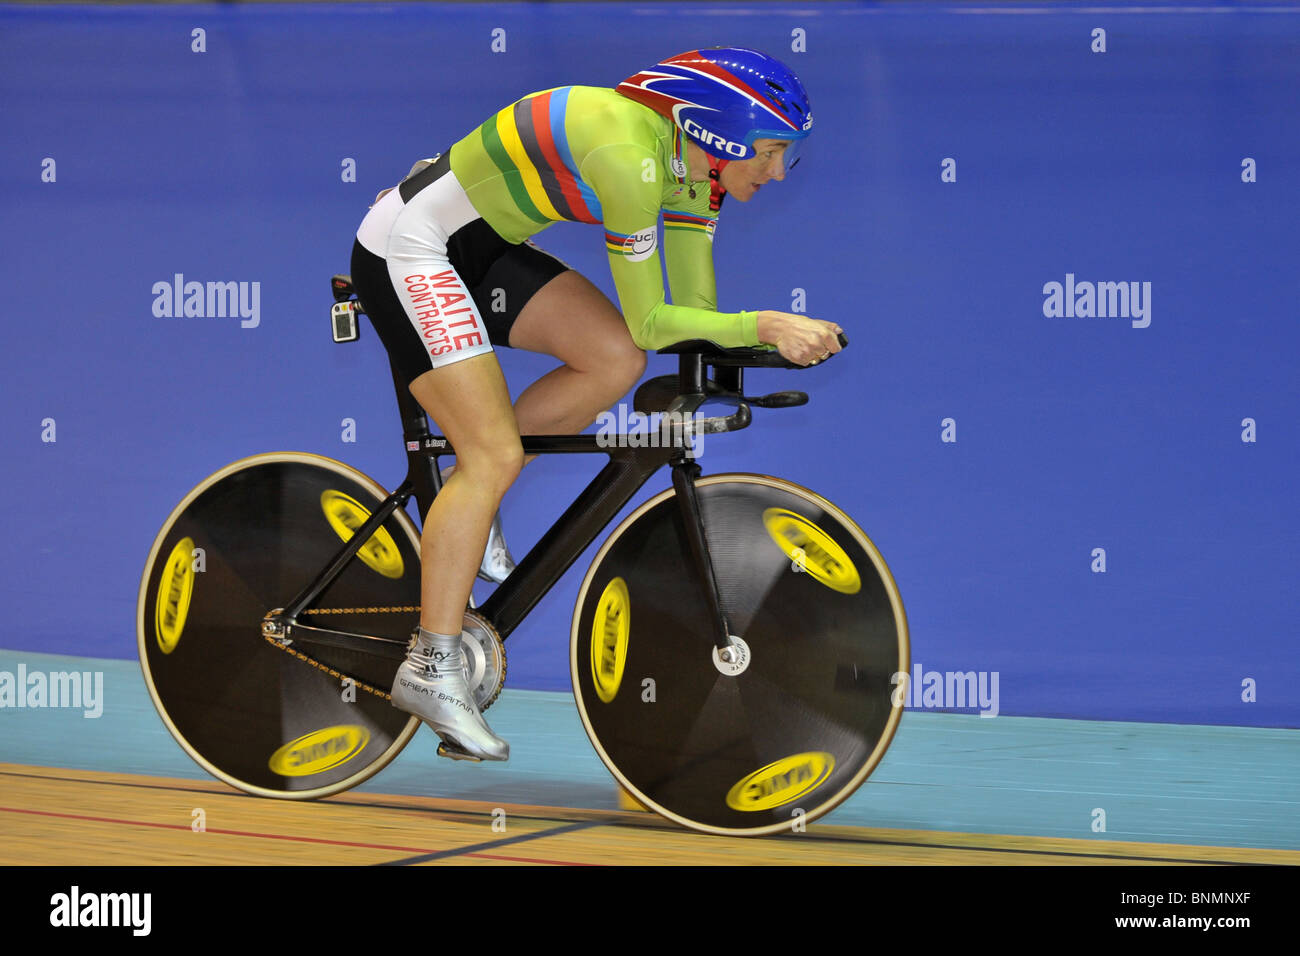 Paralympian Sarah Storey OBE rides for VC St Raphael in the National track championships at Manchester velodrome. - Stock Image